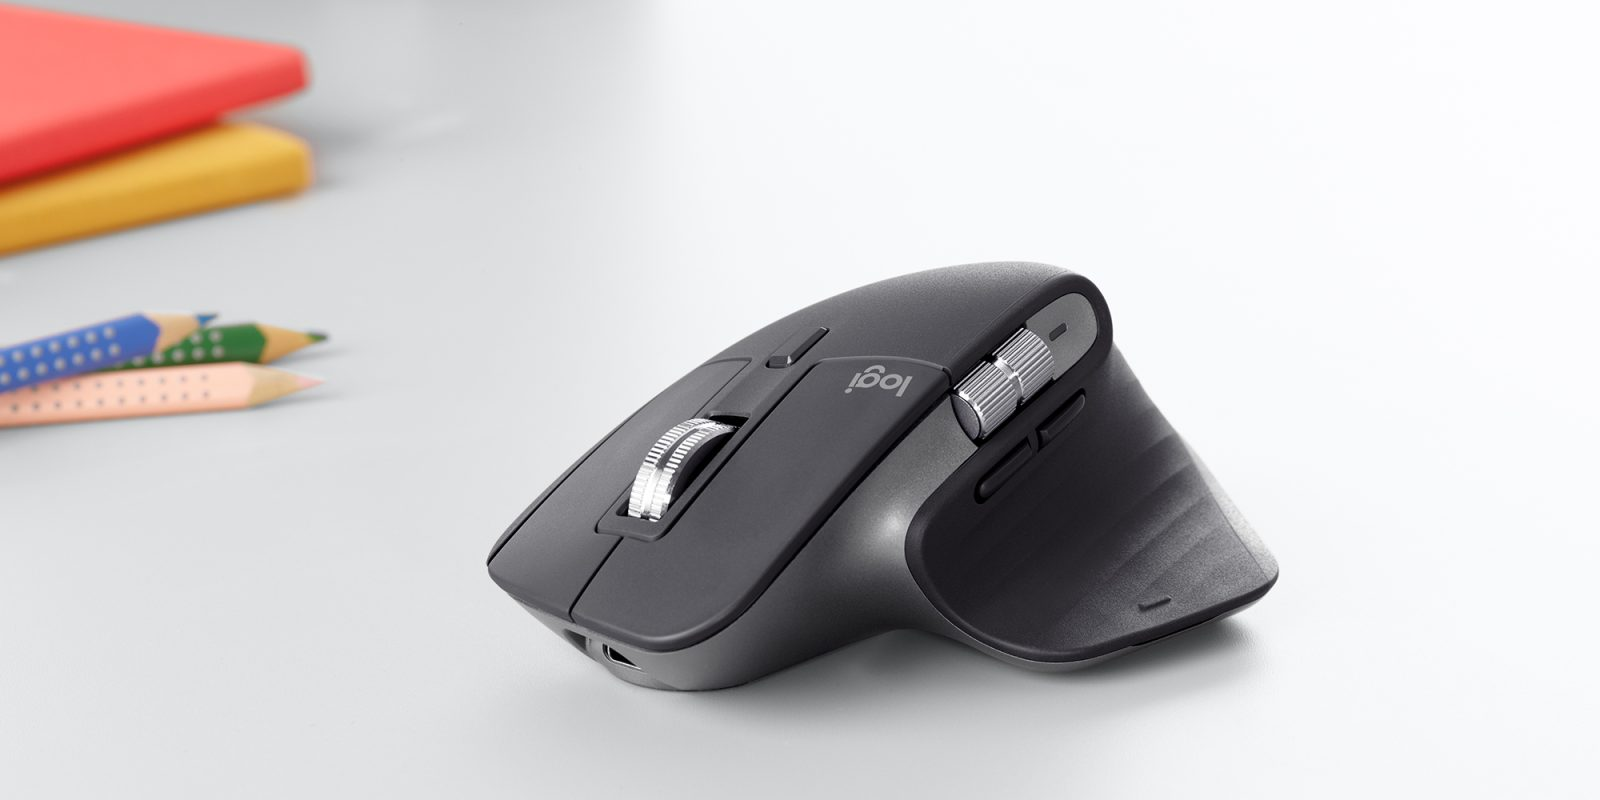 Logitech MX Master 3 Review: Premium upgrads and materials